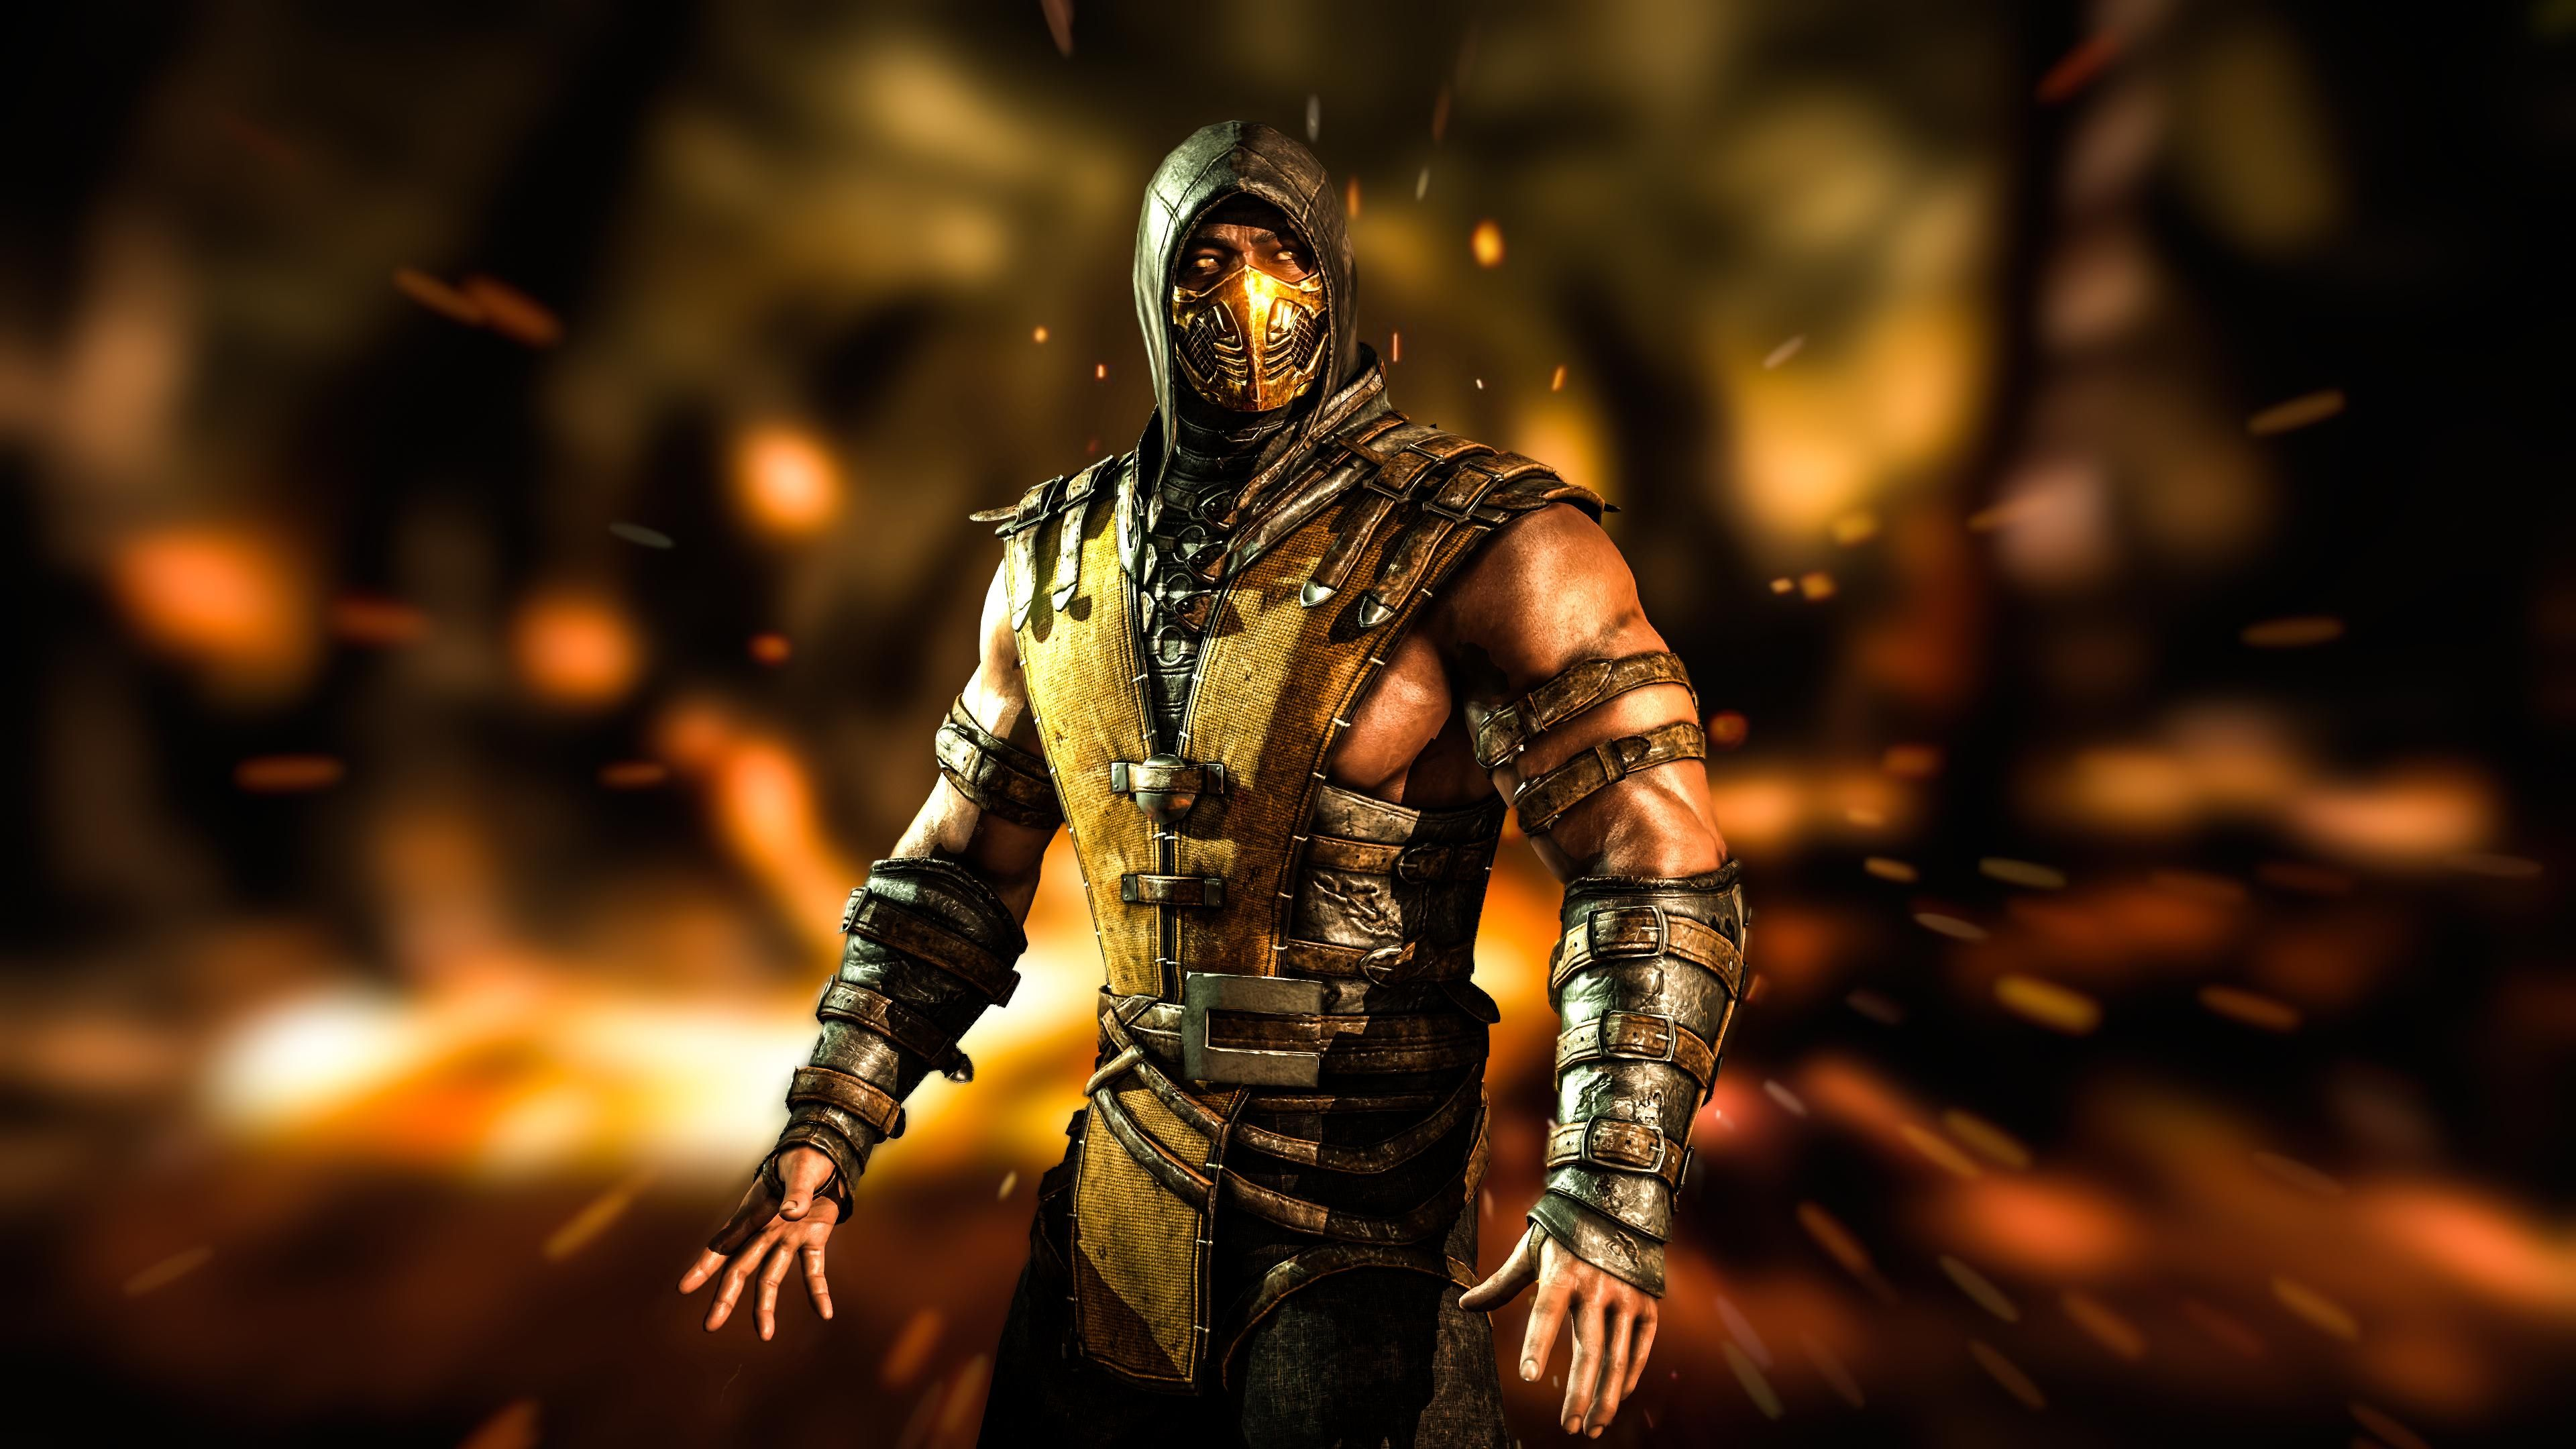 Mortal Kombat X Scorpio 3d Cool Video Games Wallpapers: Mortal Kombat X Scorpion Wallpaper HD Desktop WIdescreen